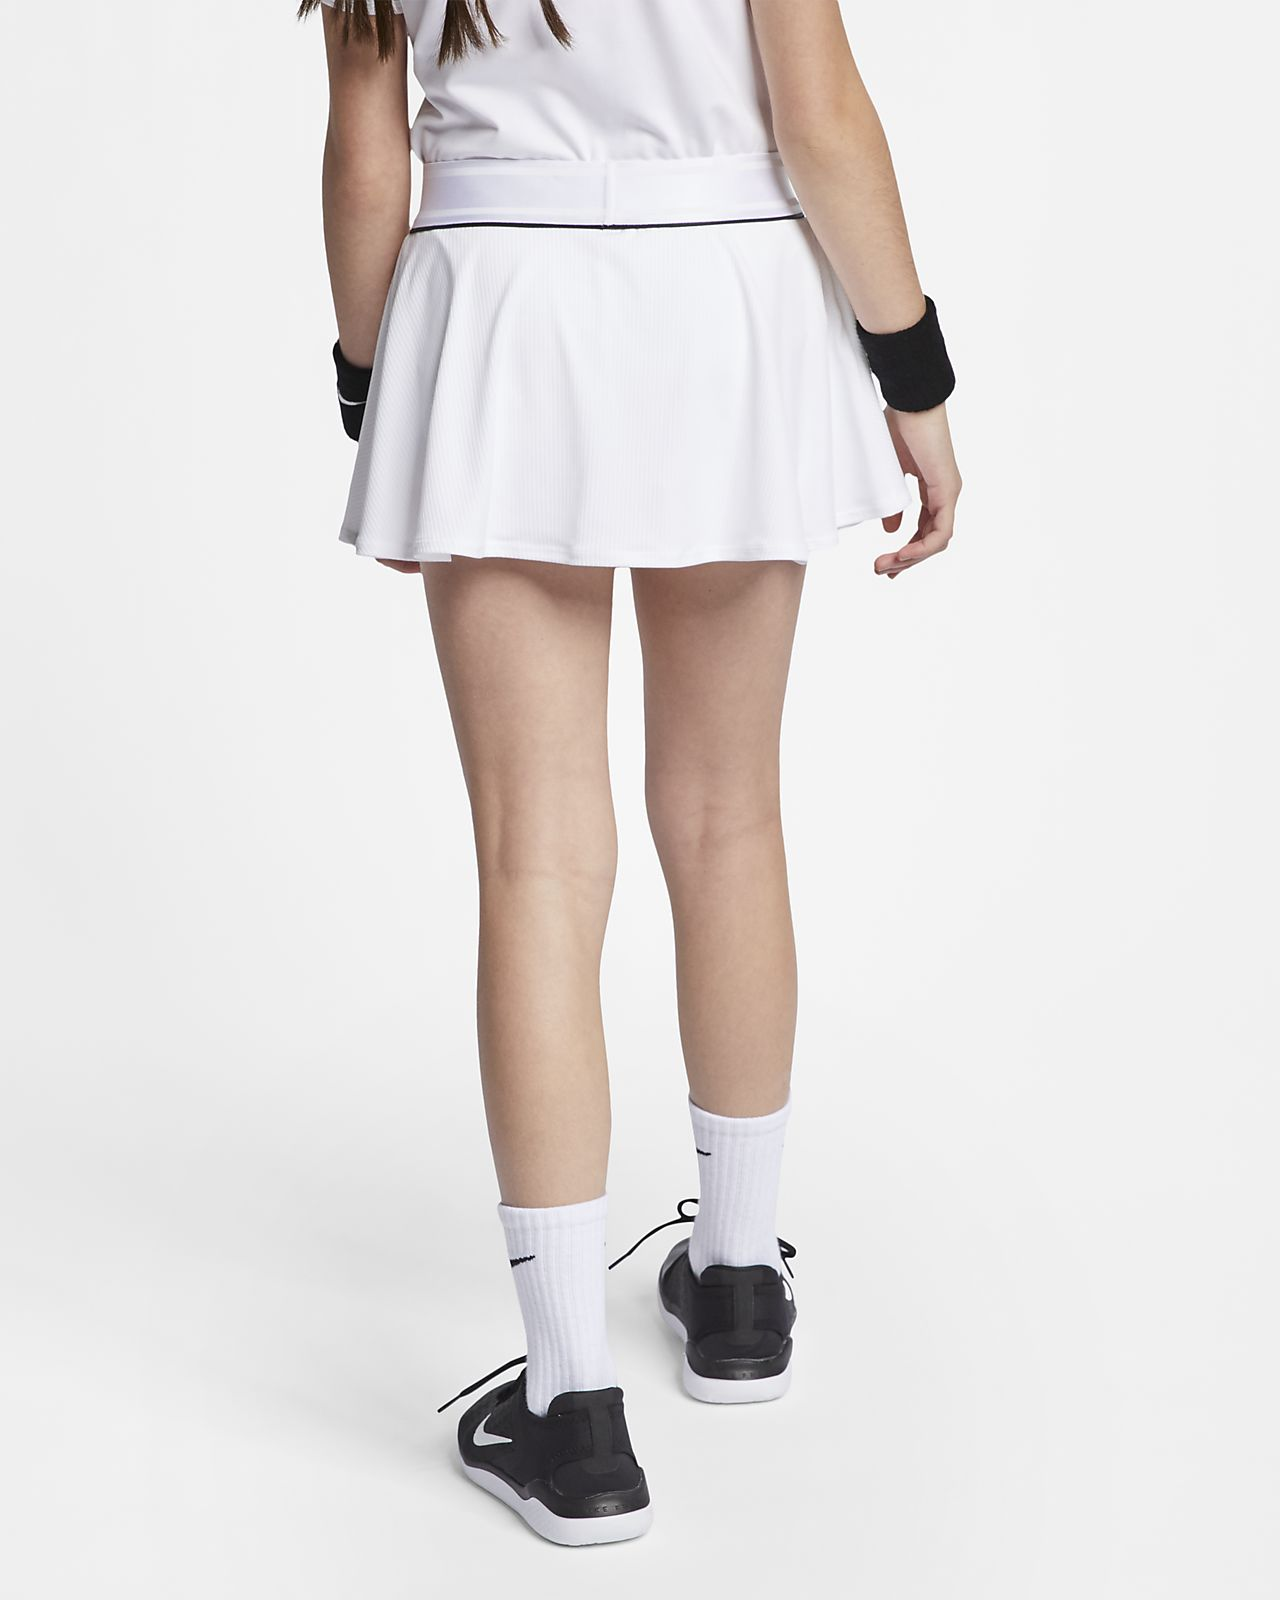 on sale da711 f6c0f NikeCourt Older Kids  (Girls ) Tennis Skirt. Nike.com LU